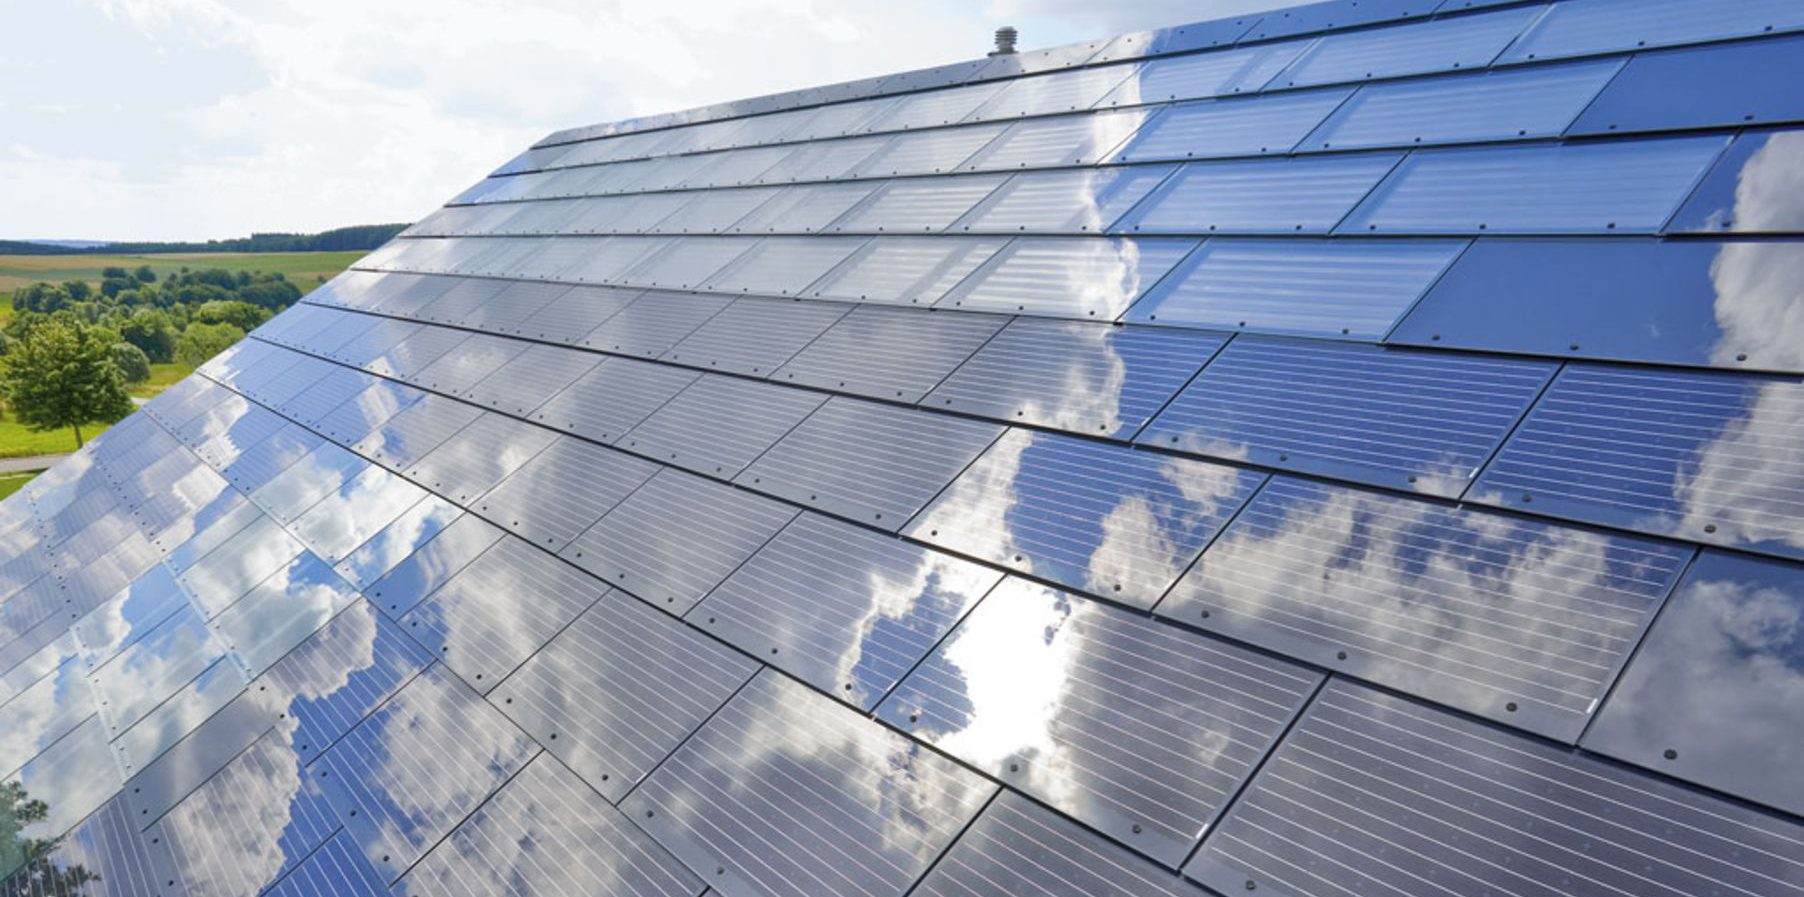 Elon Musk To Unveil A Solar Roof Product To